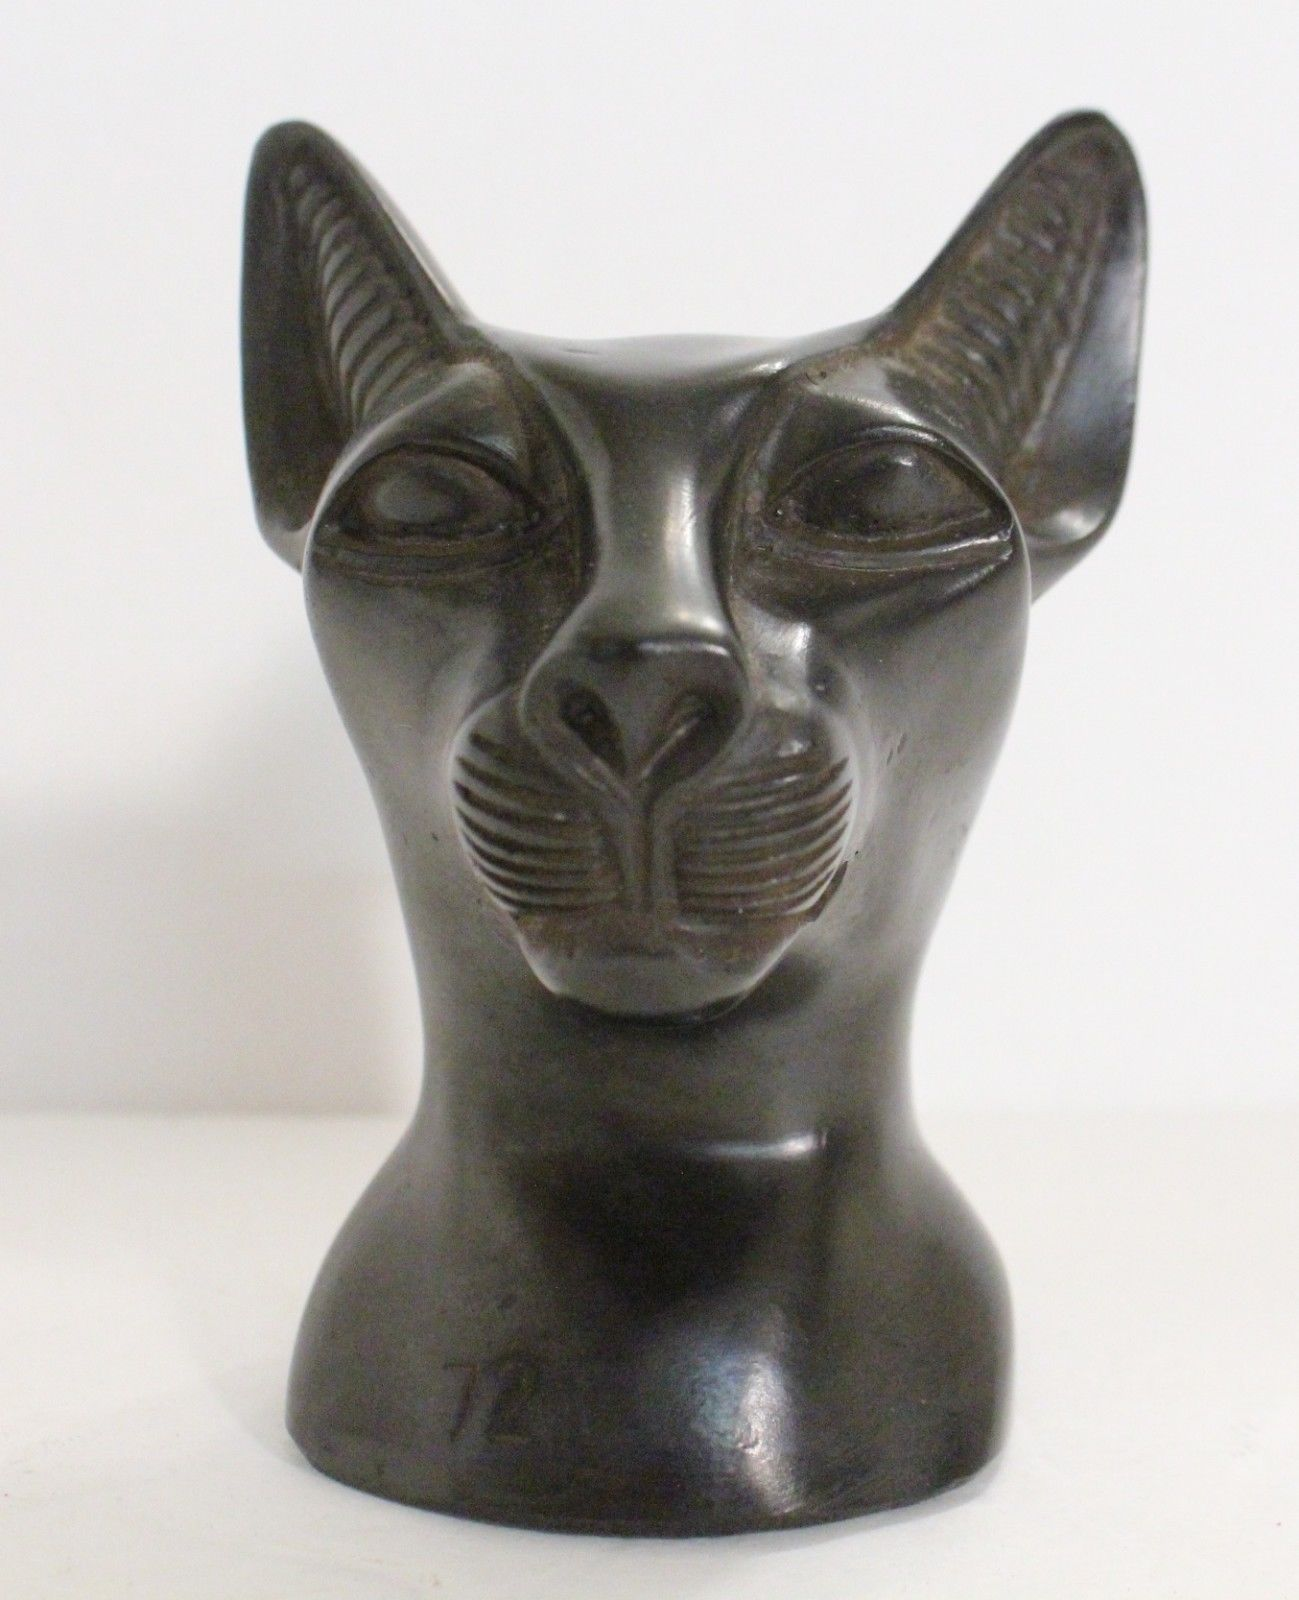 Black Stone Egyptian CAT HEAD SCULPTURE. The detailed